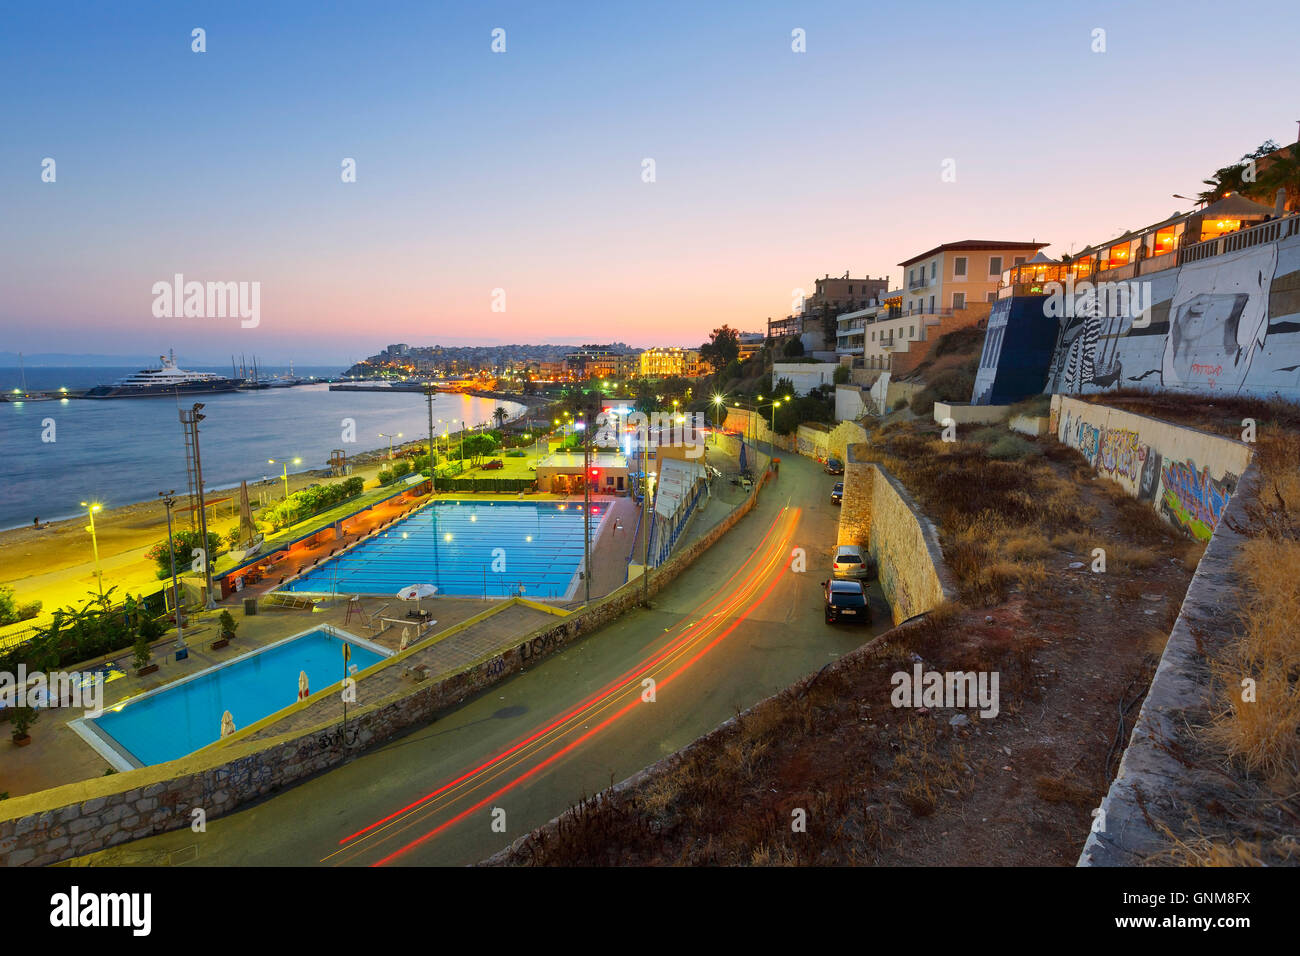 View of the municipal swimming pool in Piraeus and mouth of Zea marina, Athens. - Stock Image